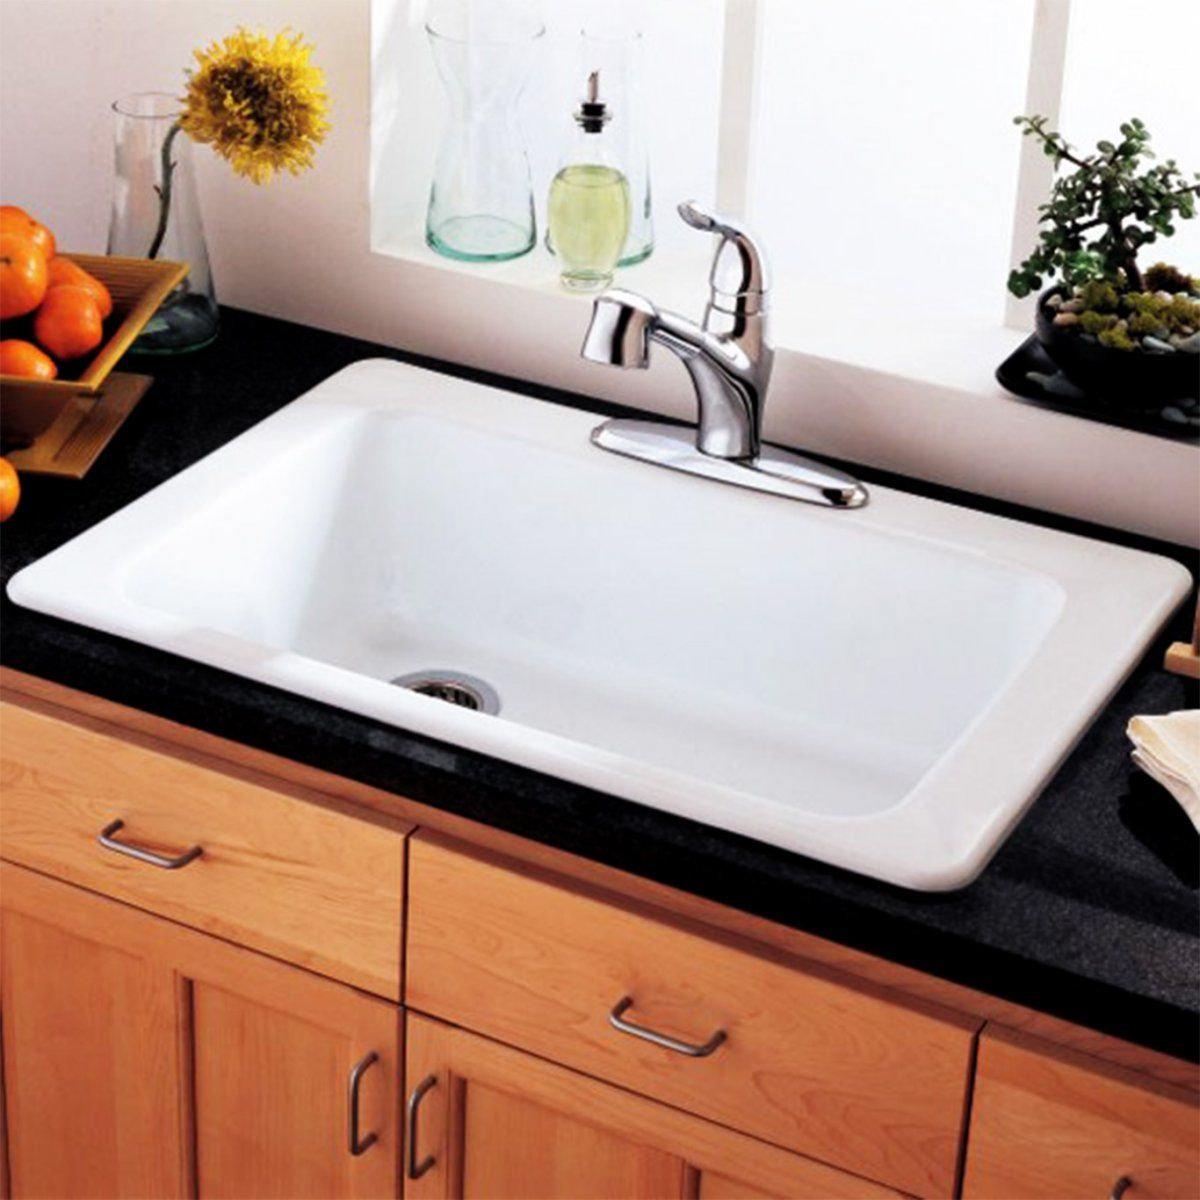 Bushboard\'s Encore solid surface in Ivory Glass shown with Franke ...